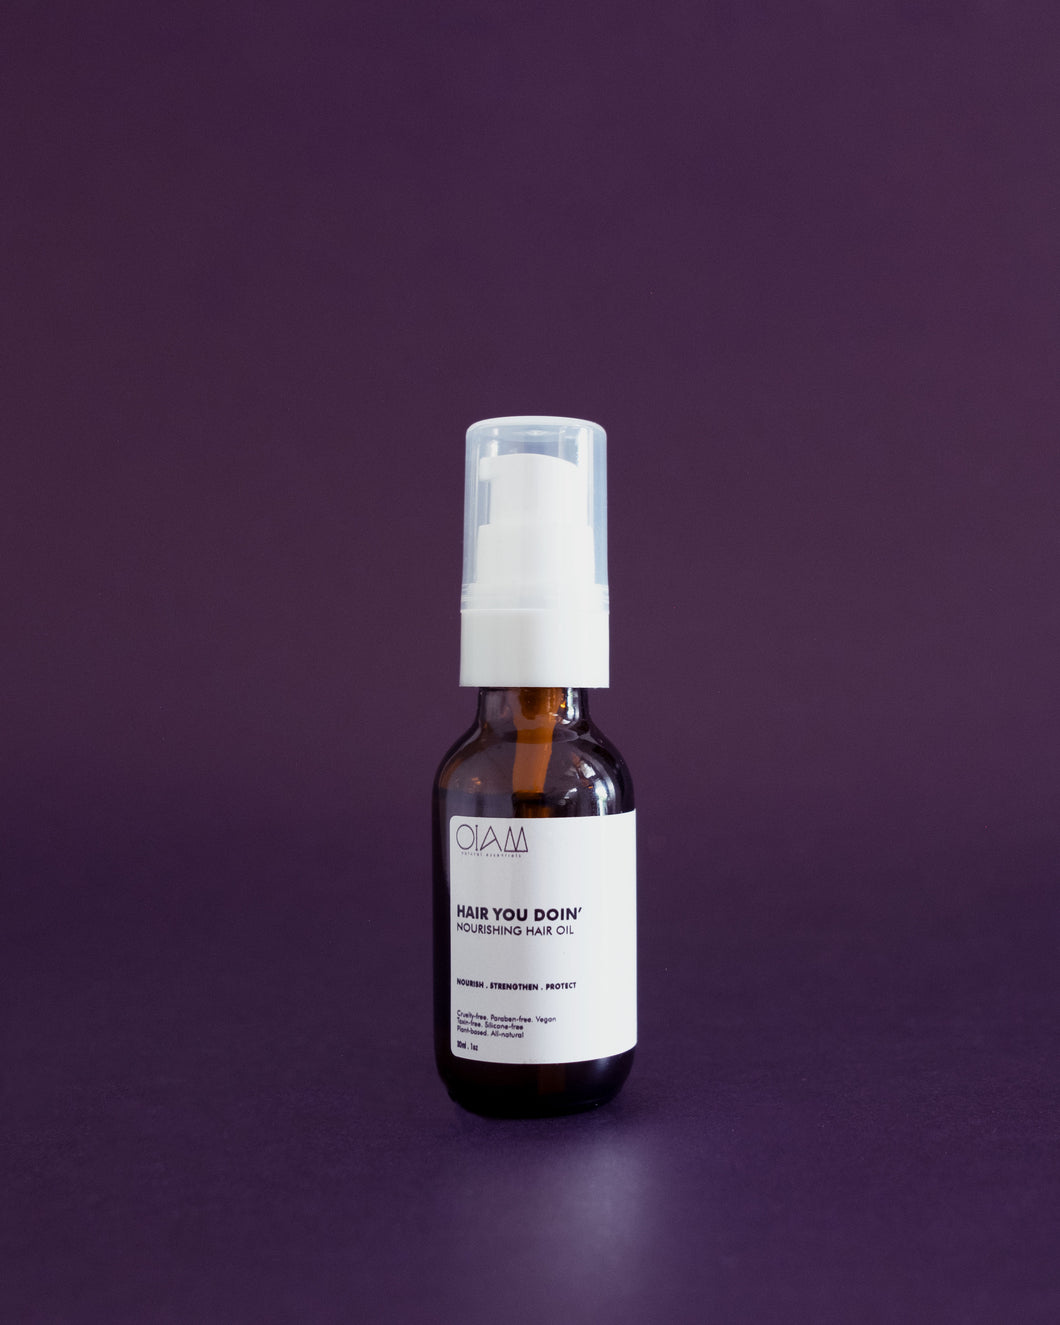 Hair You Doin' - Nourishing Hair Oil (30 ml) - Loop.